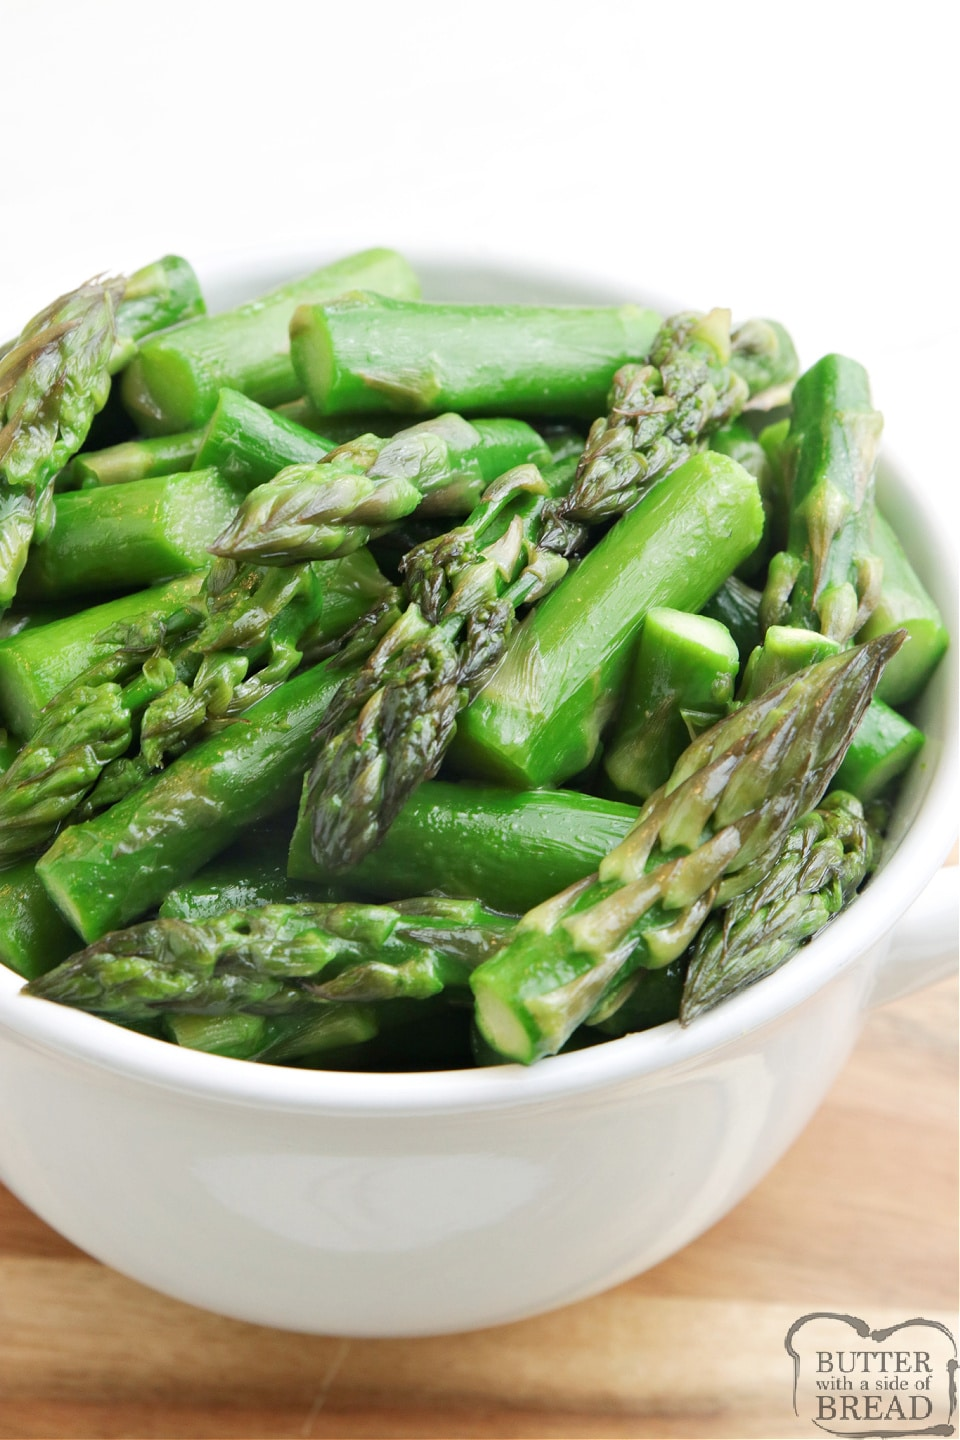 Sugared Asparagus recipe made with brown sugar, butter and chicken broth. Perfect balance of sweet and savory for a simple asparagus recipe that is made on the stove in just a few minutes.